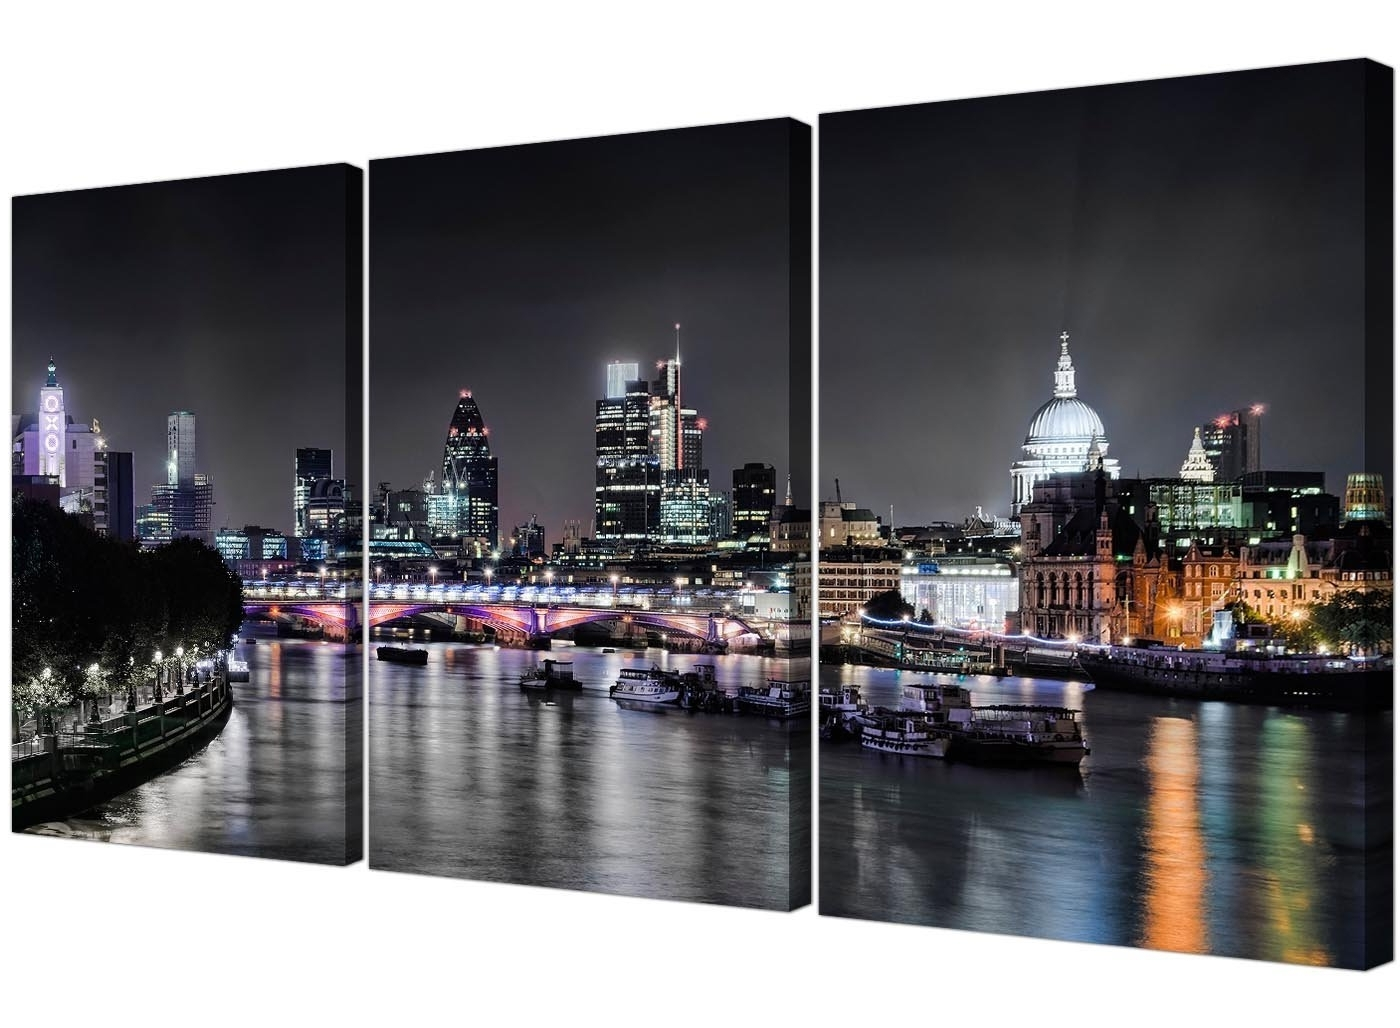 Cheap London Skyline Canvas Art – 3 Panel For Your Living Room Intended For Best And Newest London Canvas Wall Art (View 7 of 15)